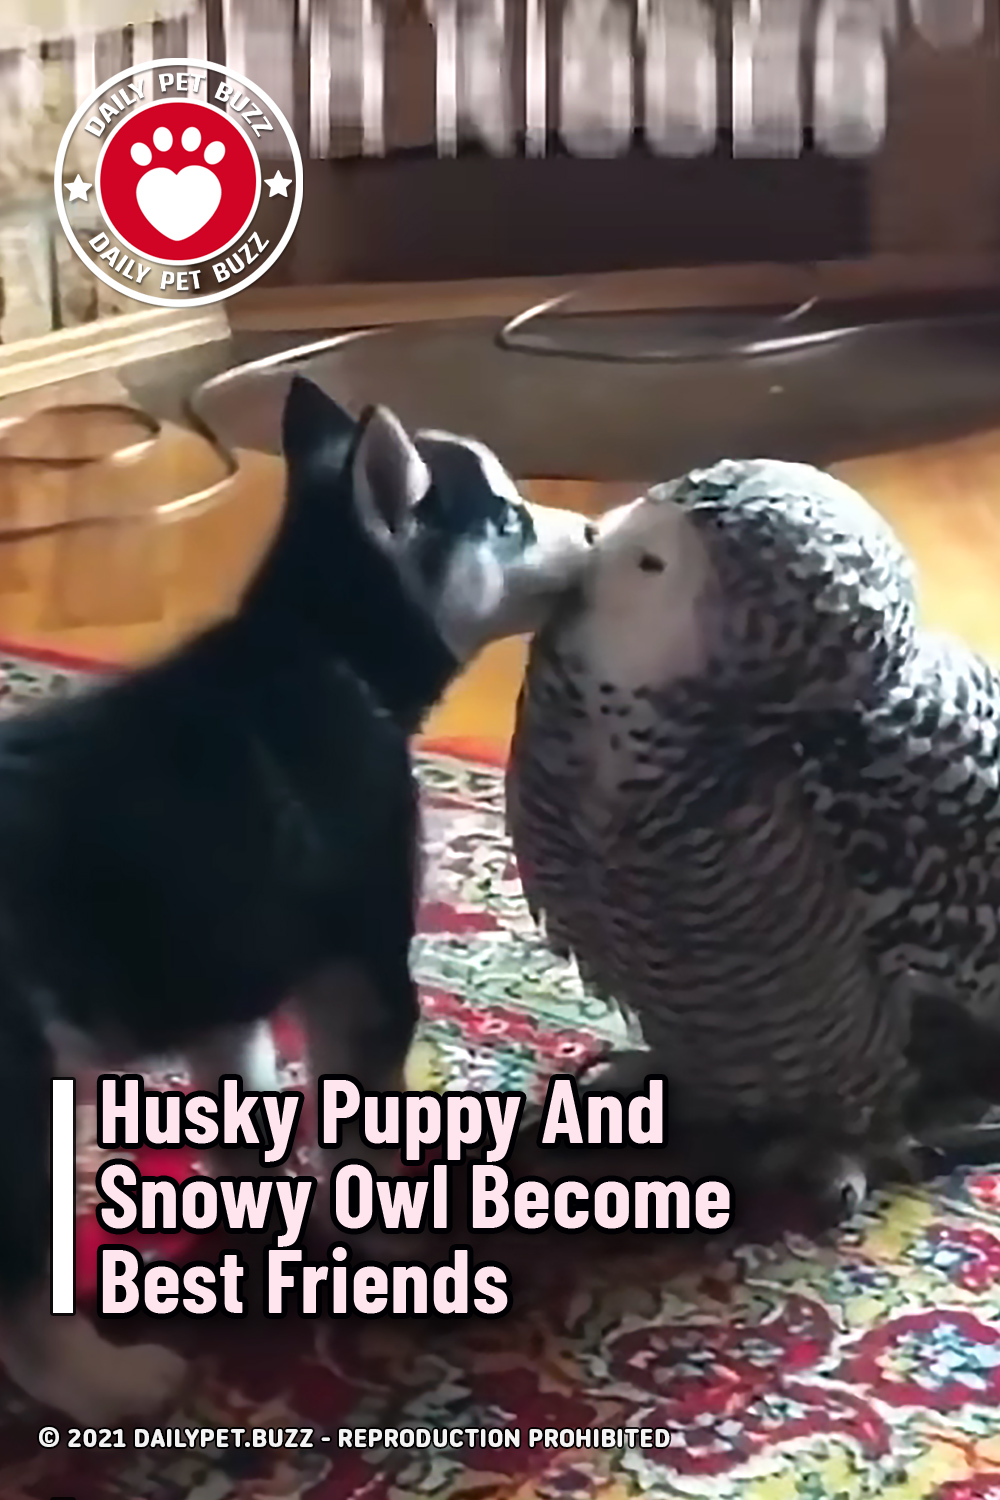 Husky Puppy And Snowy Owl Become Best Friends